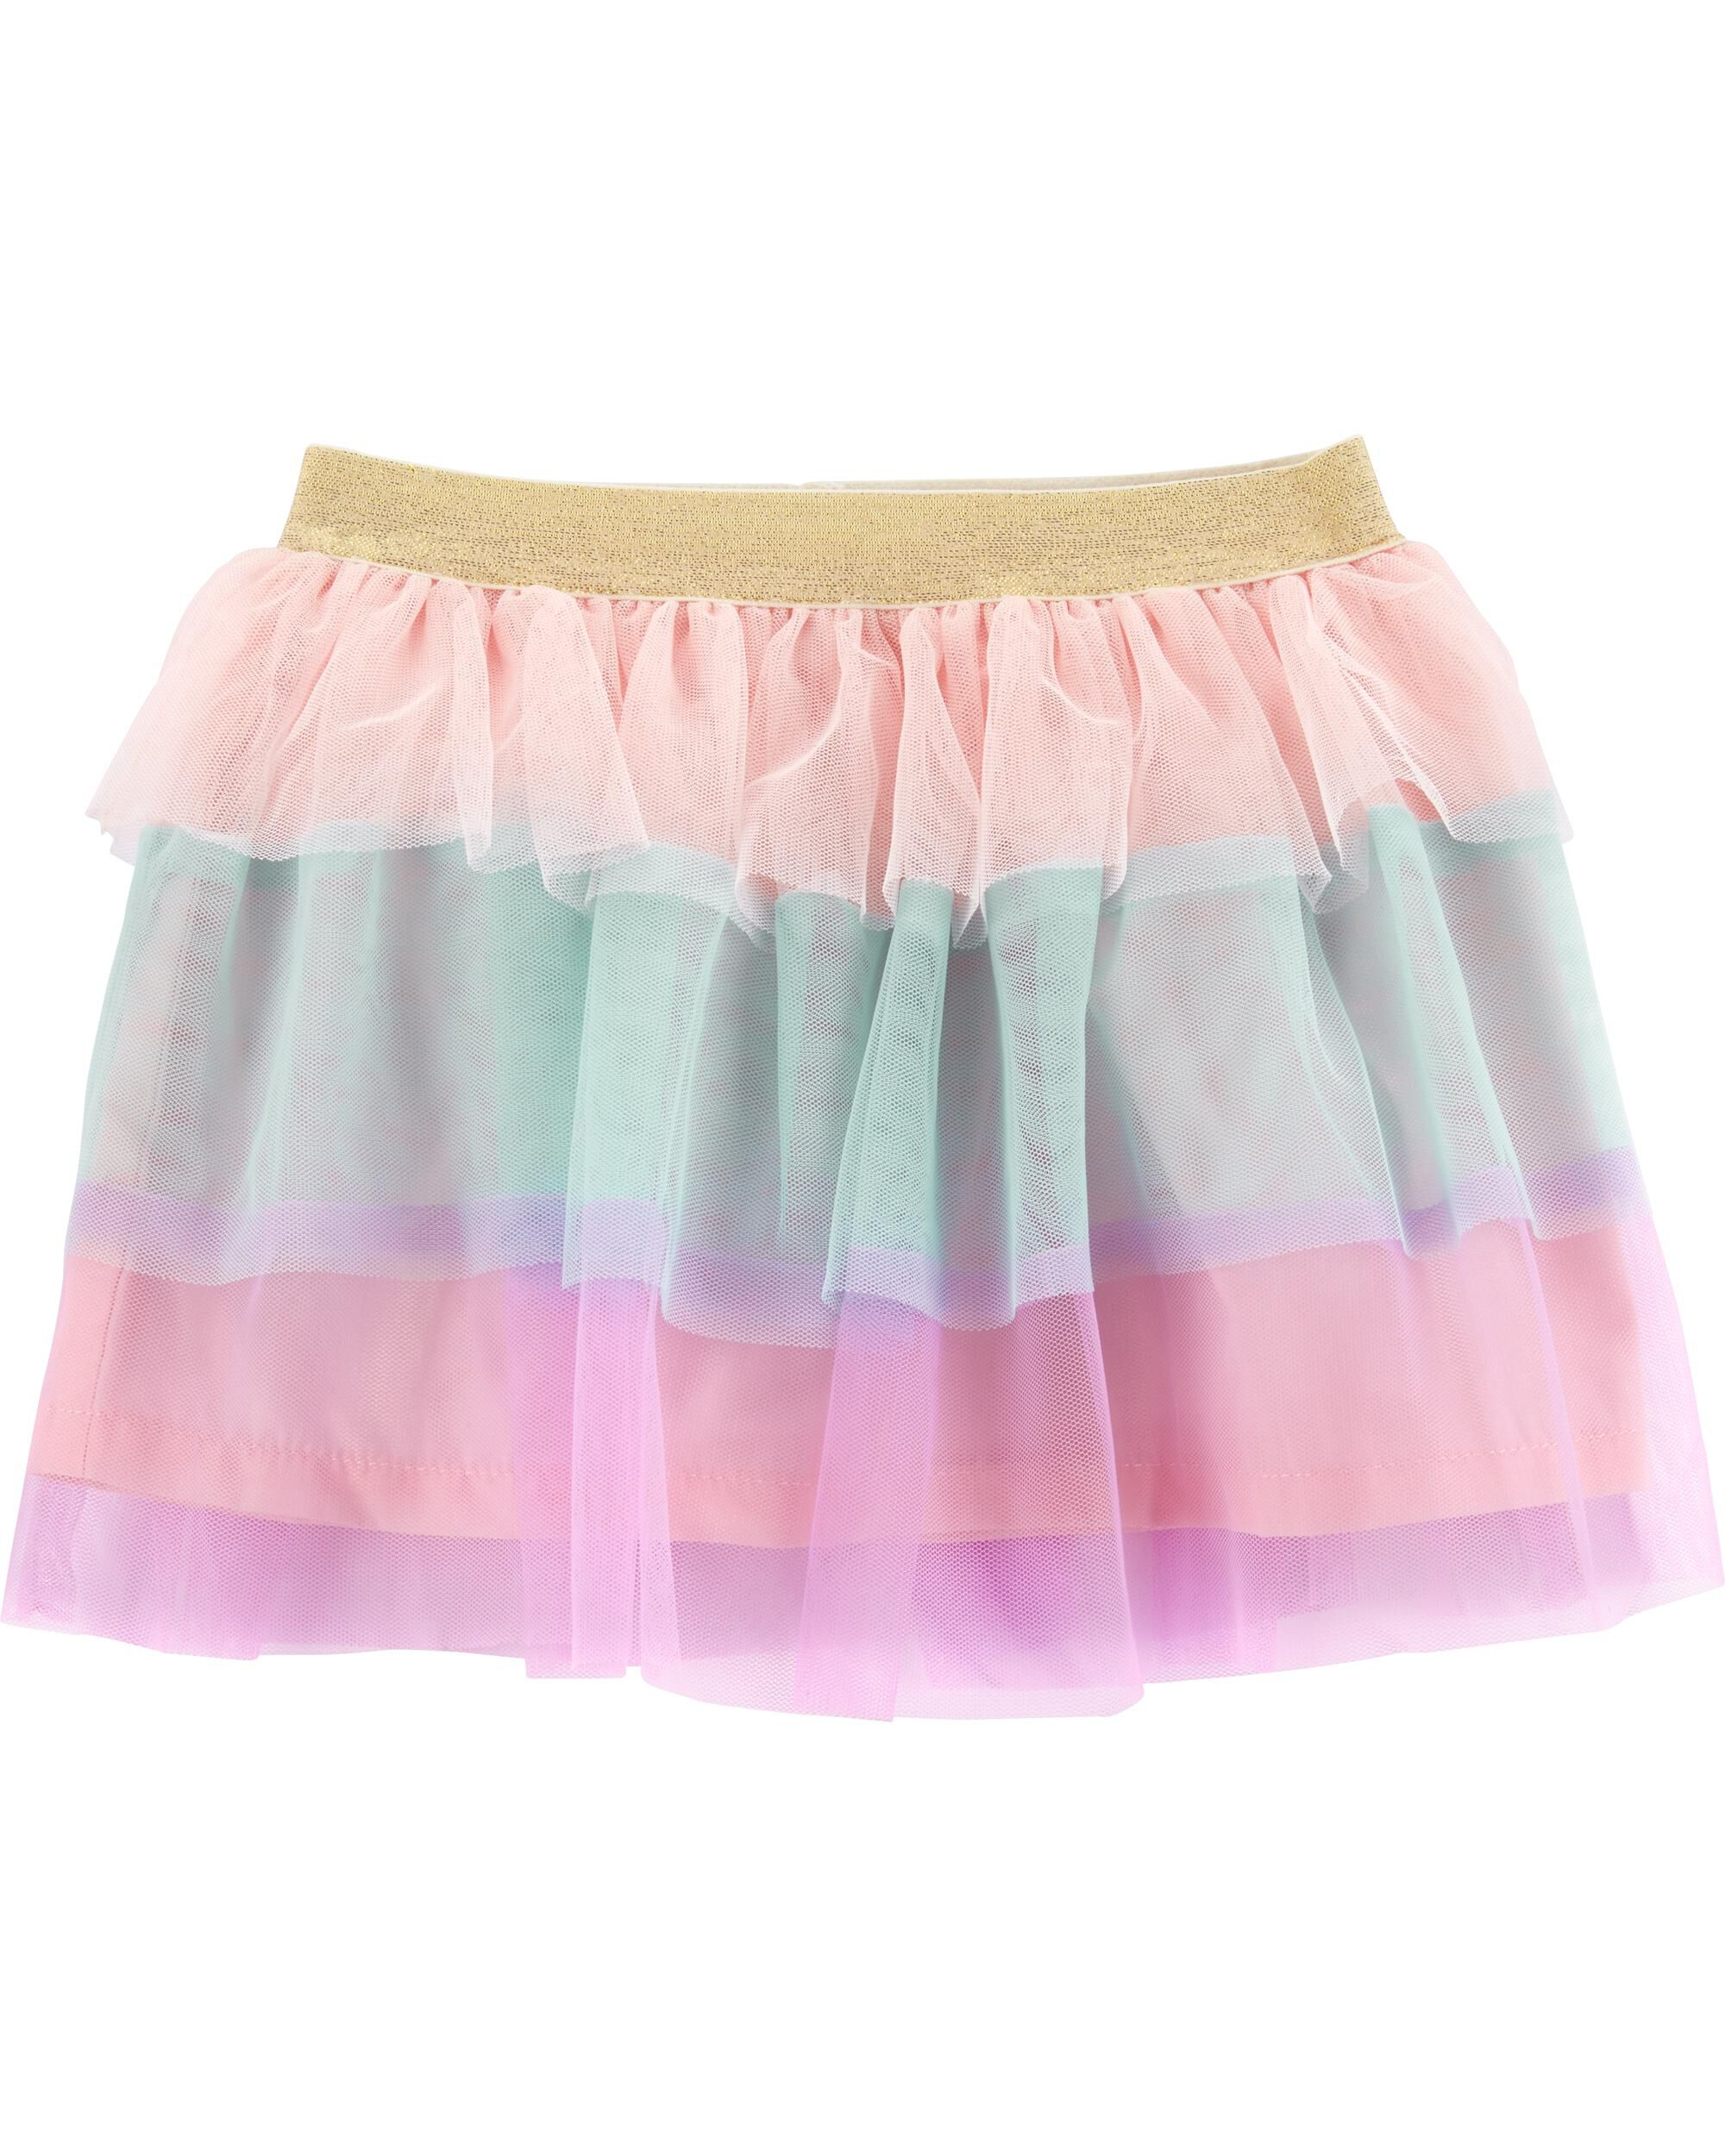 Skirts Rainbow Skort Carters New W Tag Popular Brand Girls 3t Skirt Unicorn Clothing, Shoes & Accessories